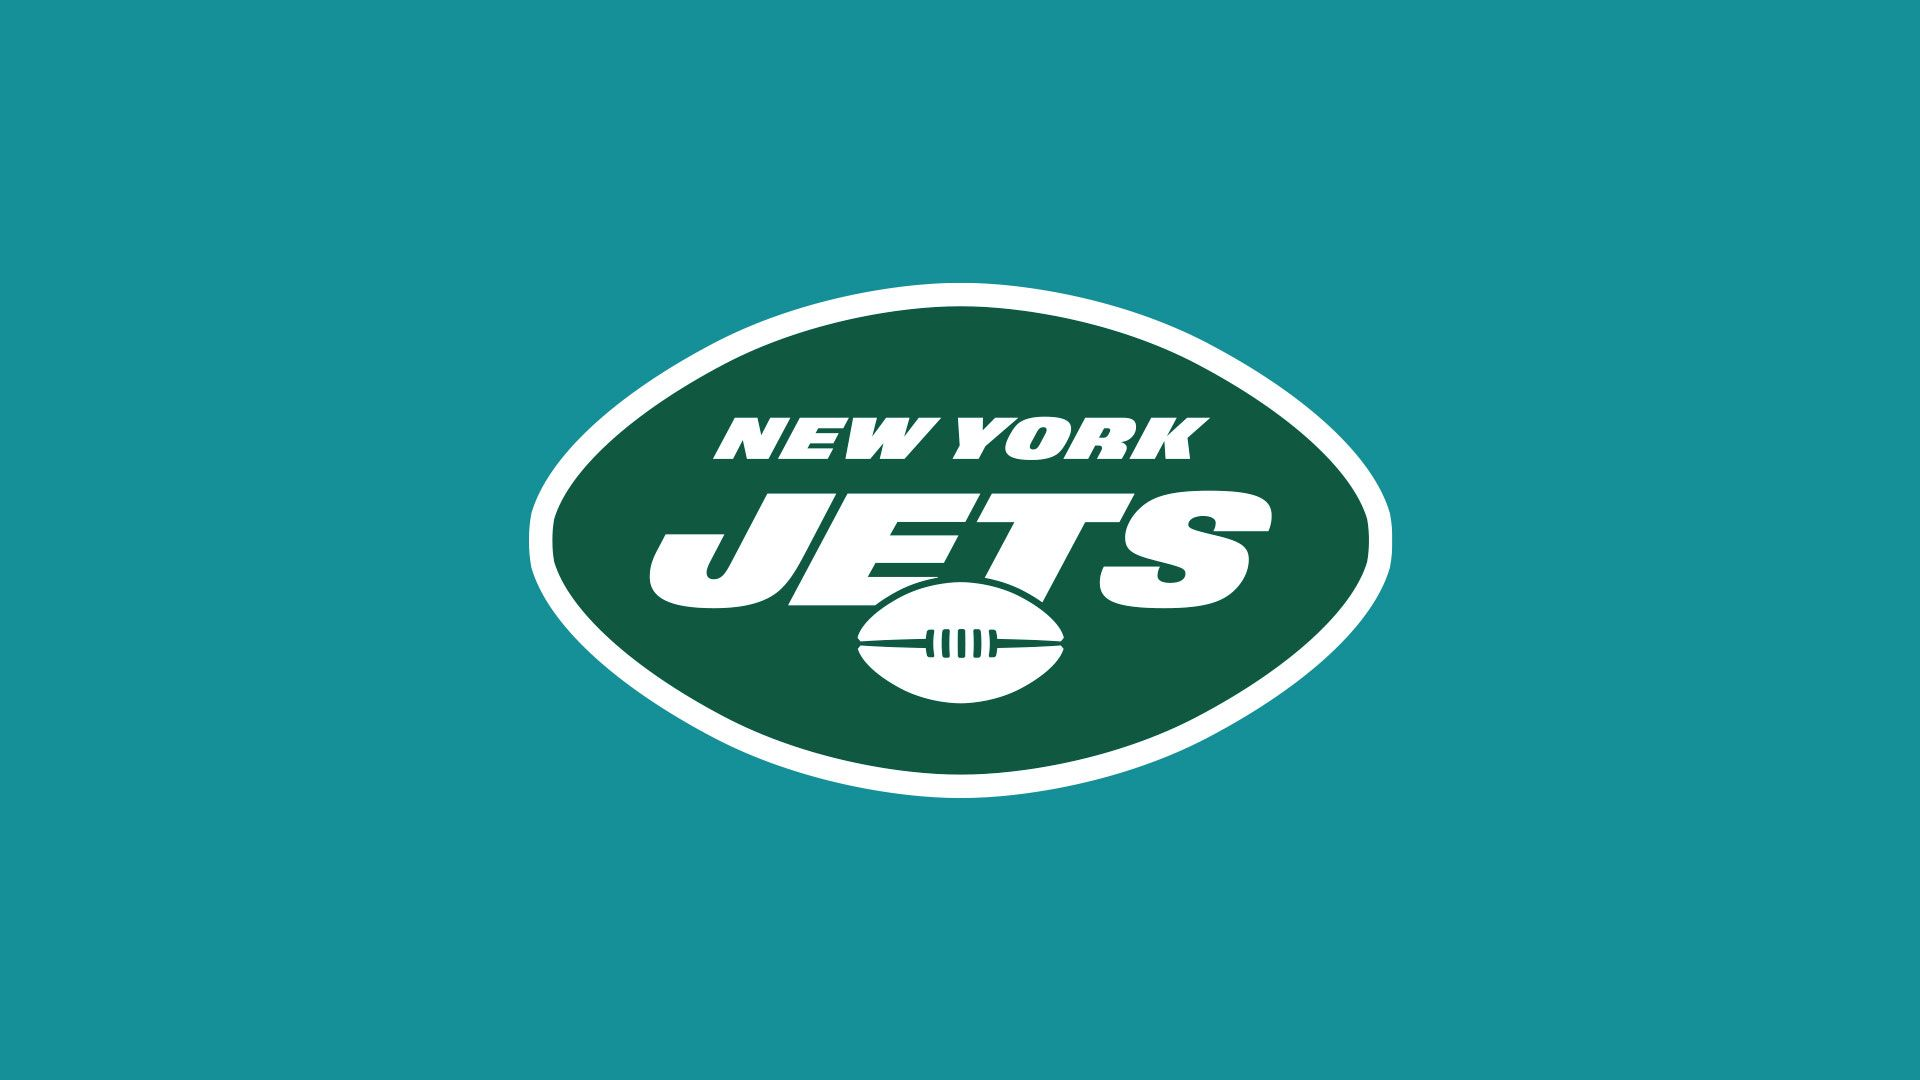 2021 Home Opponent: New York Jets